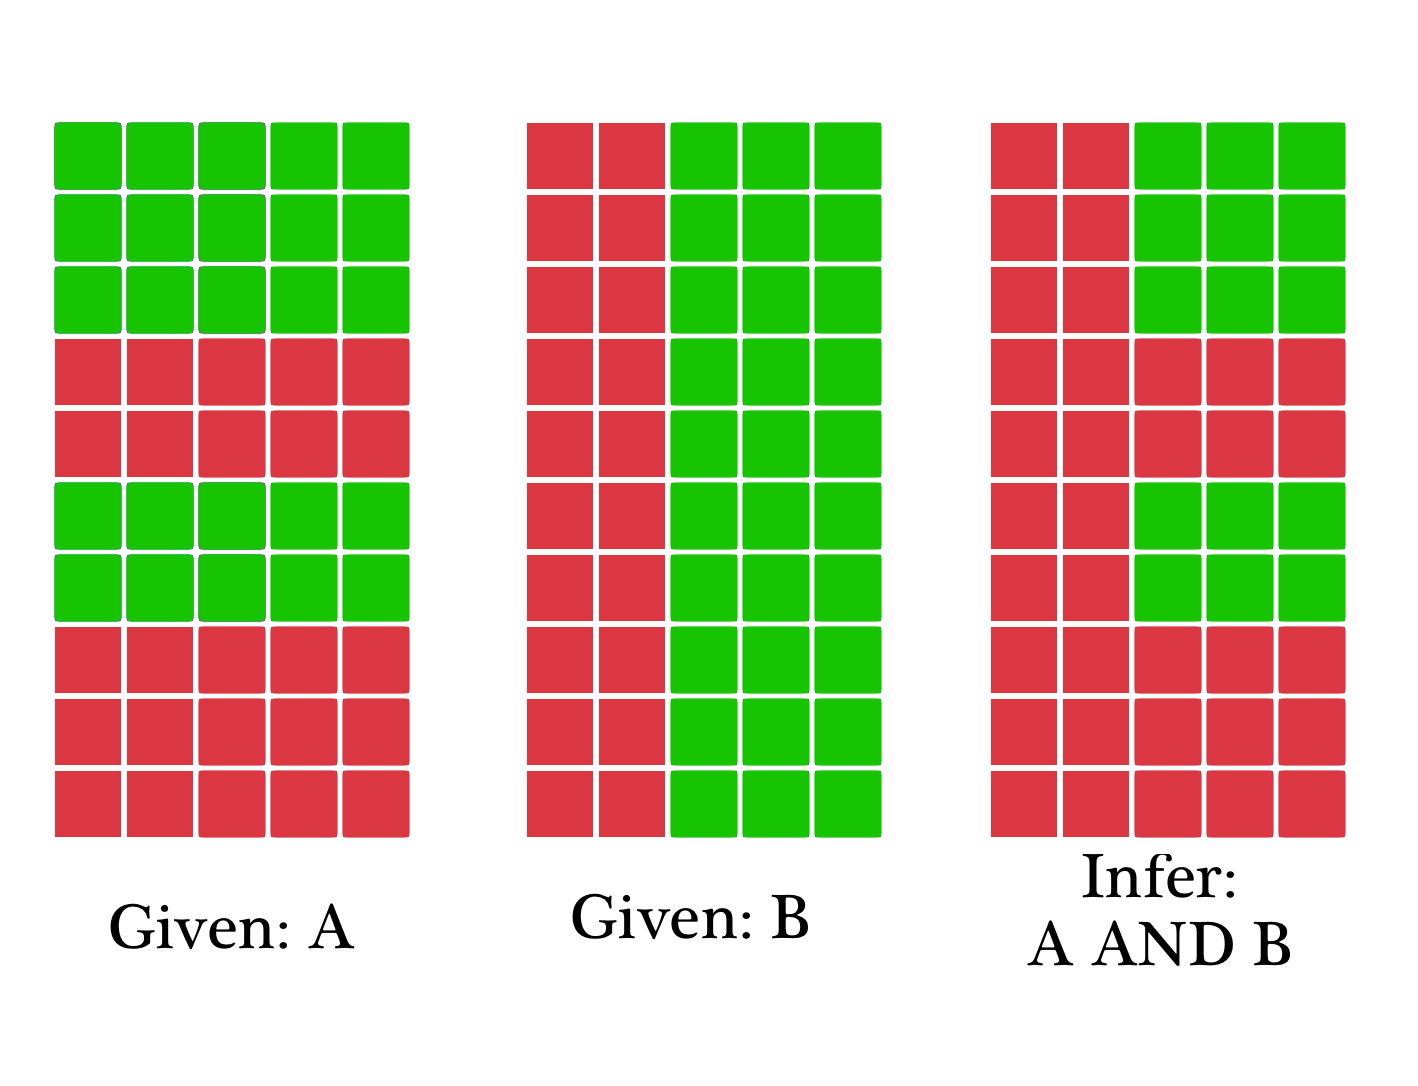 Once you've inferred where voters agree with A AND B, you still need to draw your districts.